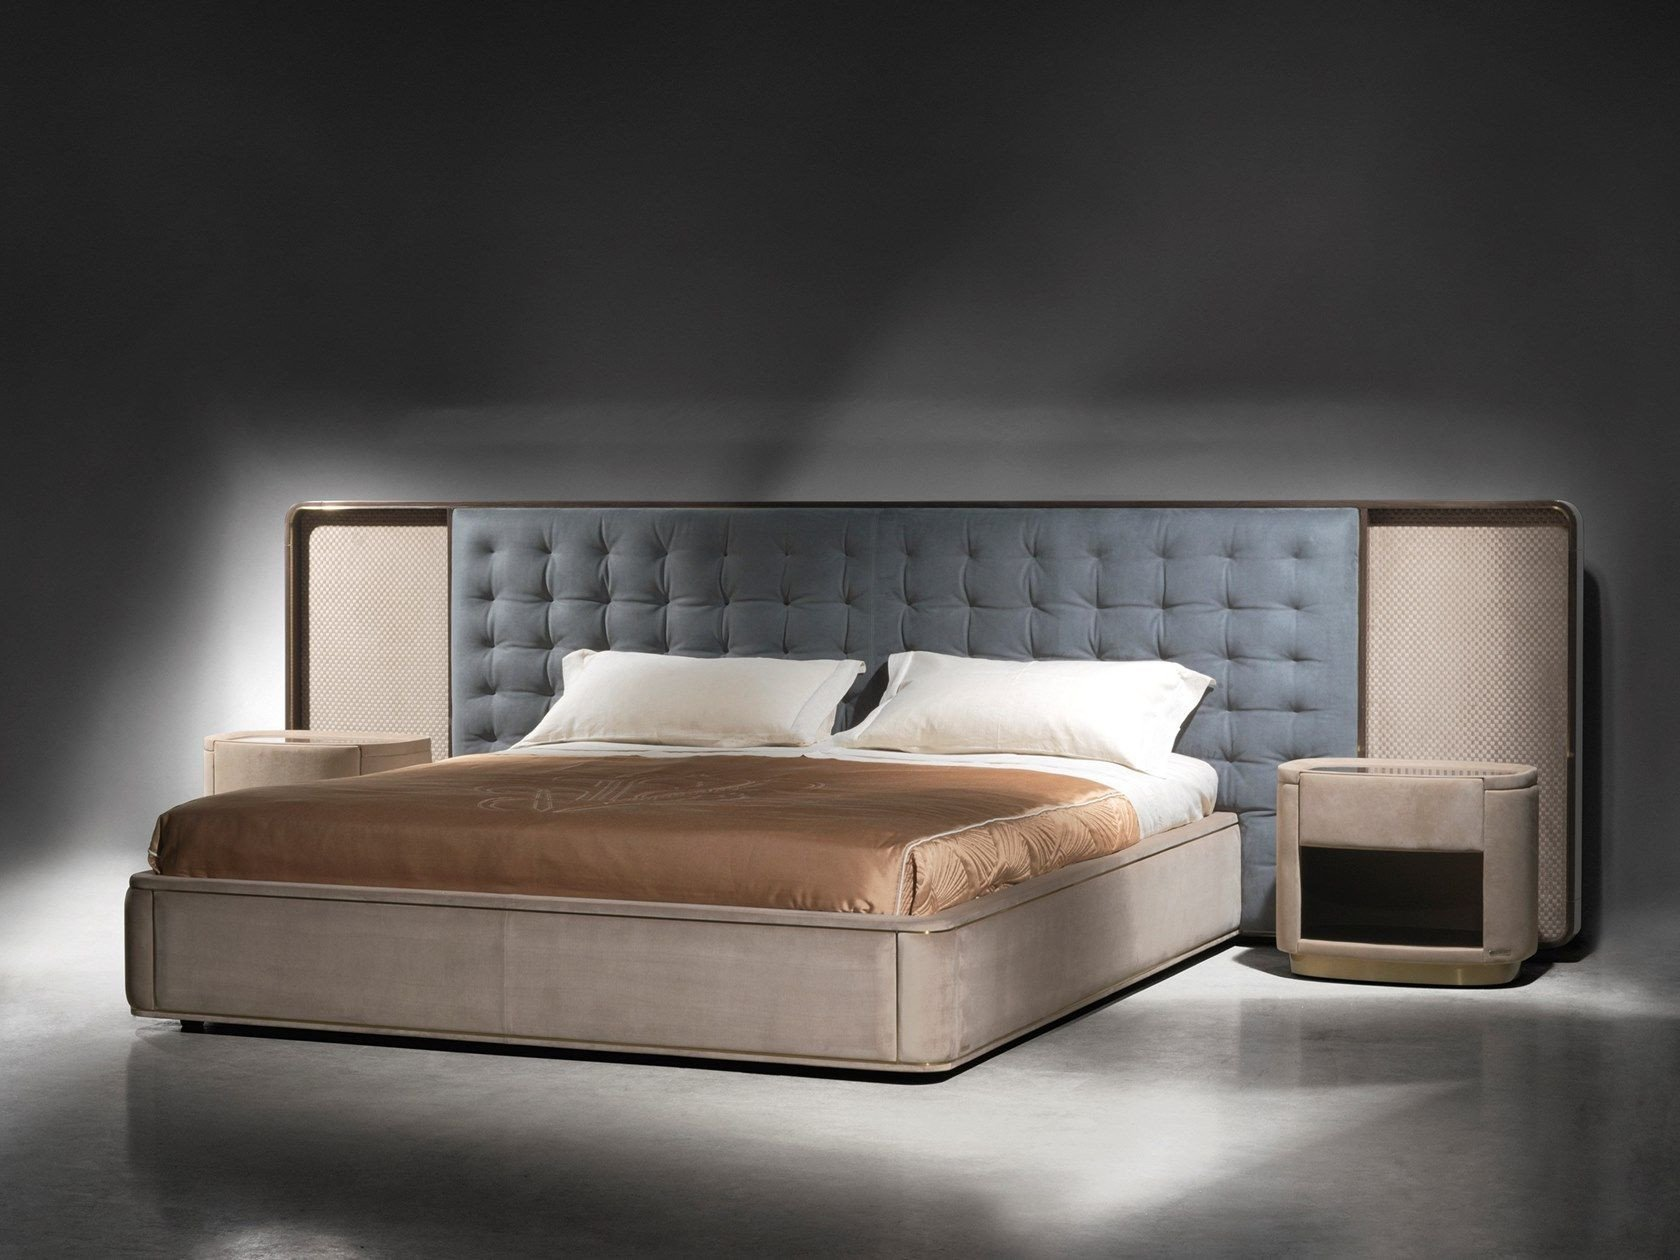 Tufted Headboard Bedroom Set Luxury Upholstered Fabric Bed with Tufted Headboard Ripley by